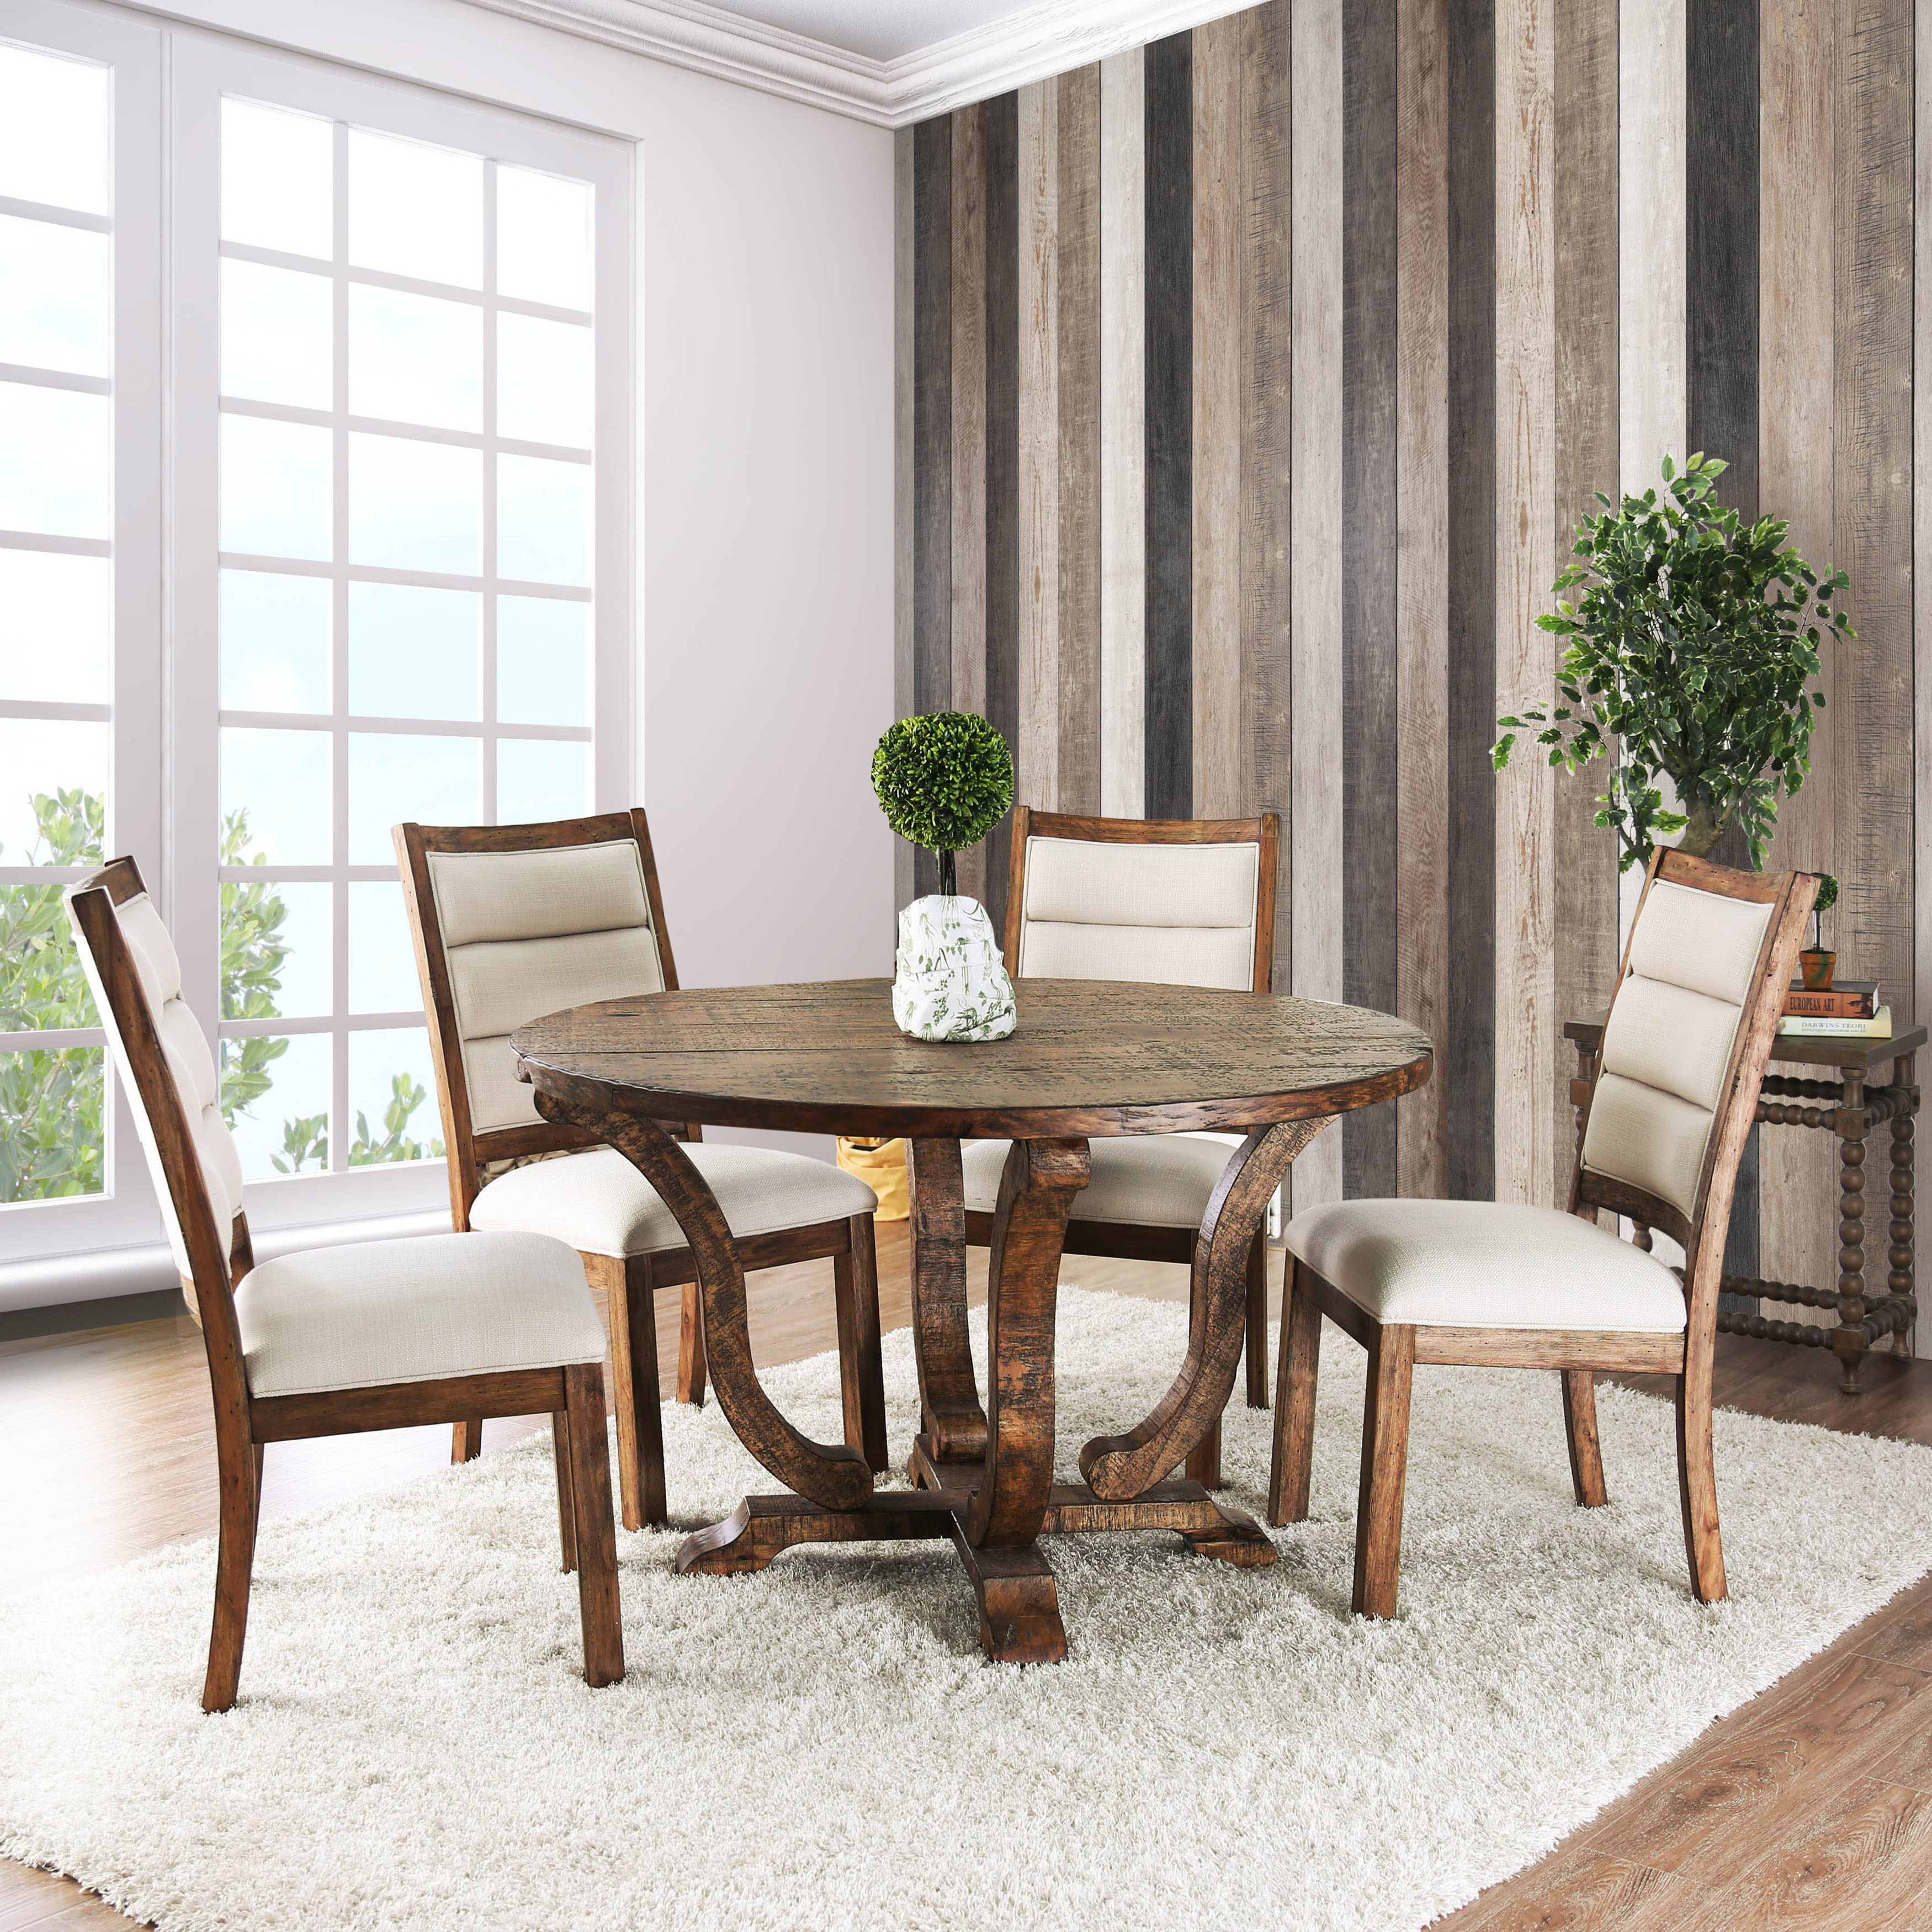 Furniture of America Fon Rustic 52-inch Solid Wood Round Dining Table